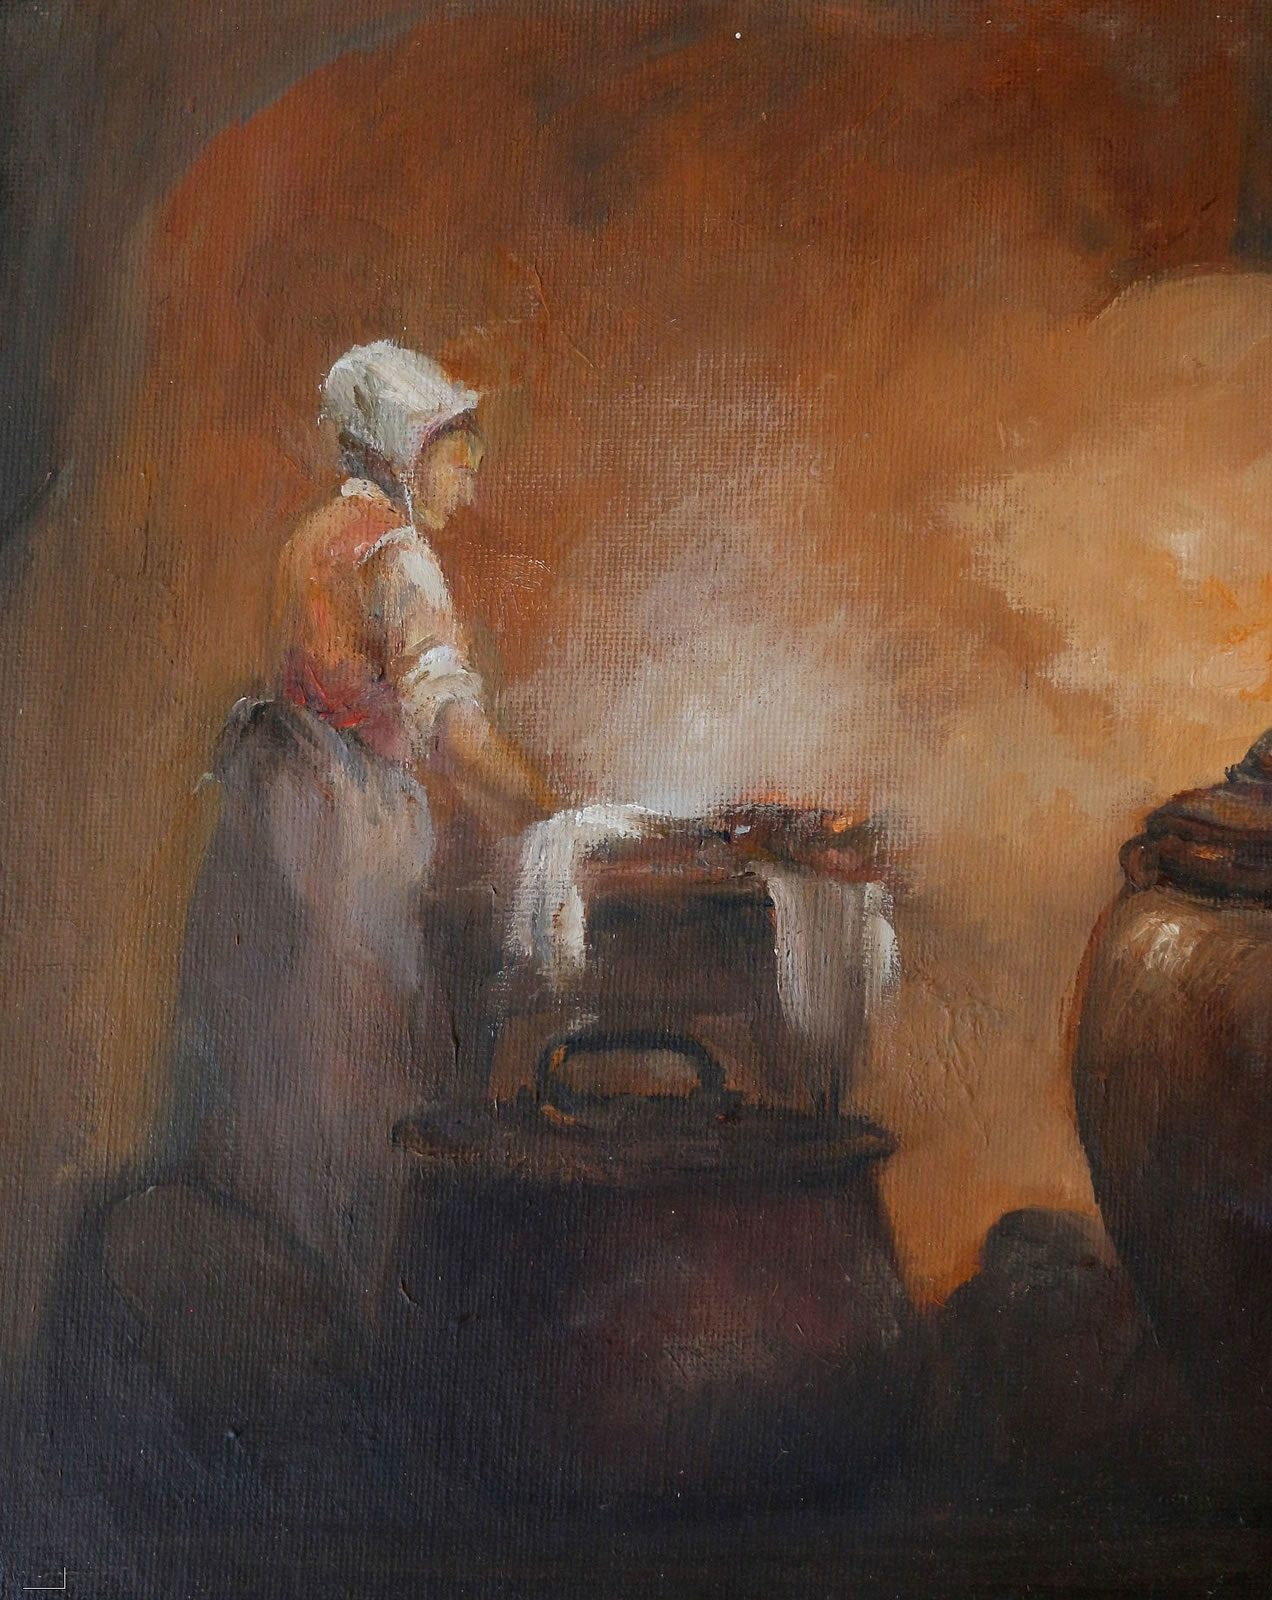 Character study in oils of medieval washer woman at work